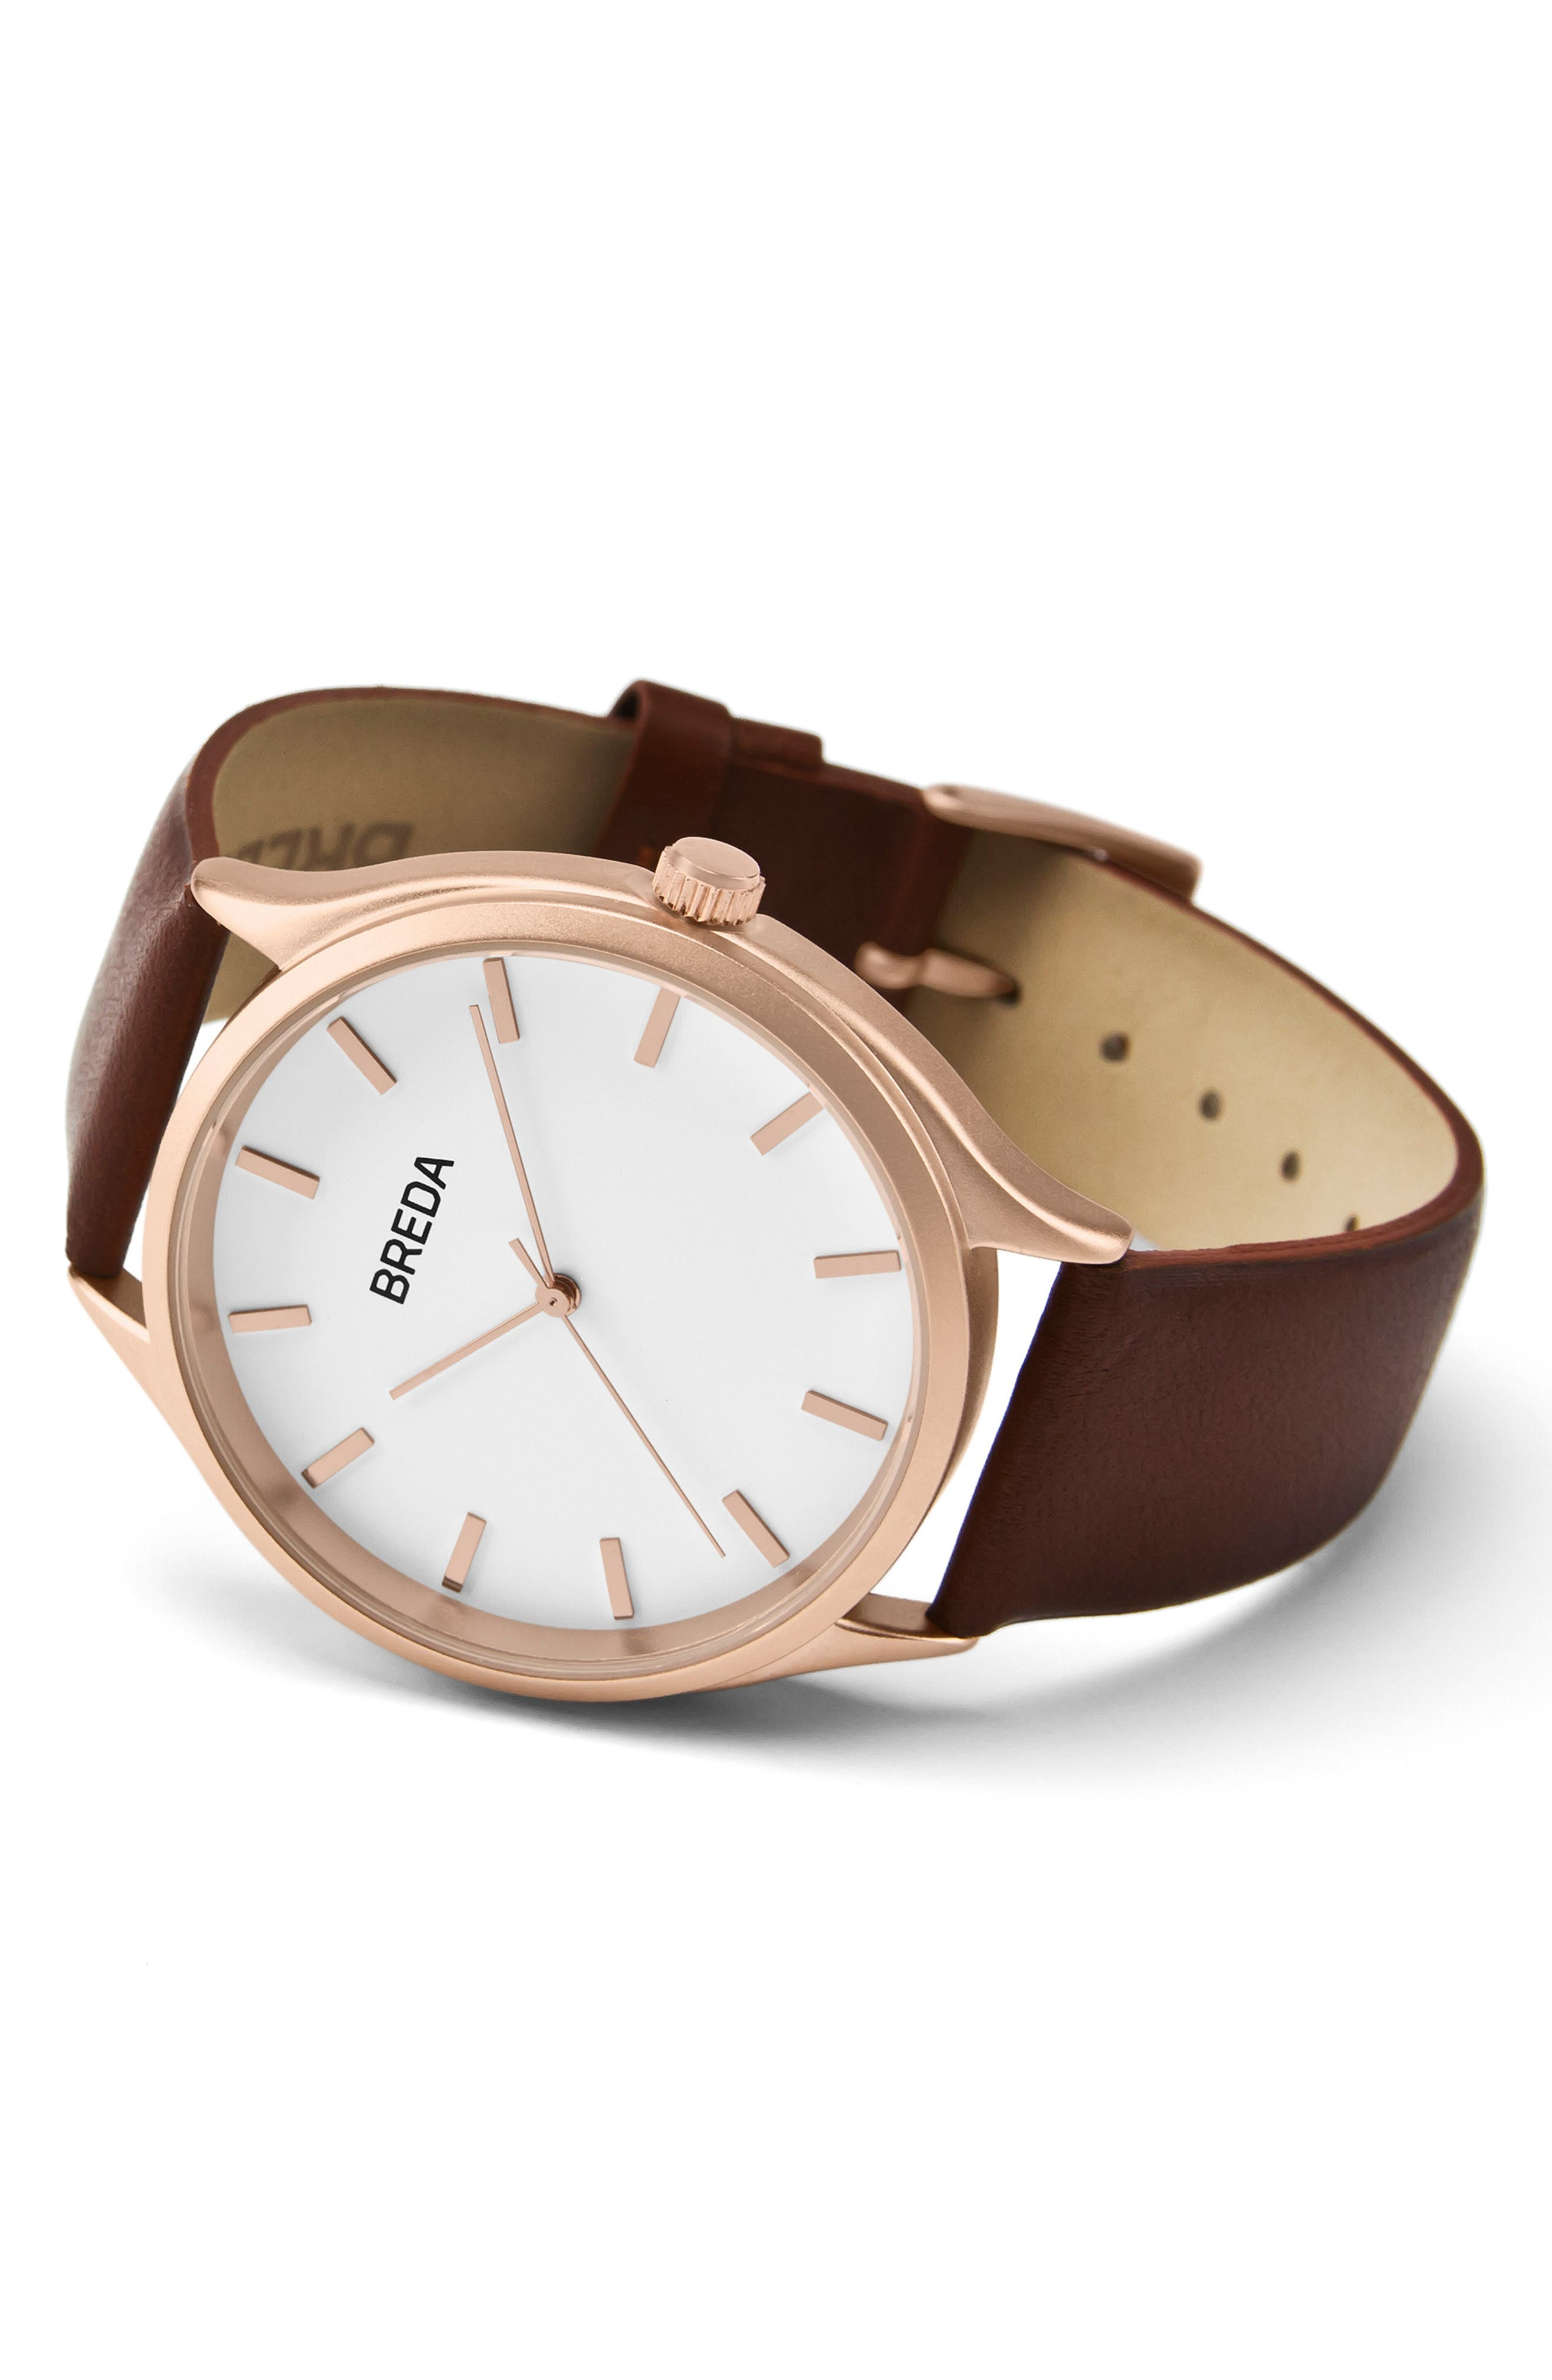 Asper Round Leather Strap Watch, 40mm,                             Alternate thumbnail 2, color,                             BROWN/ WHITE/ ROSE GOLD